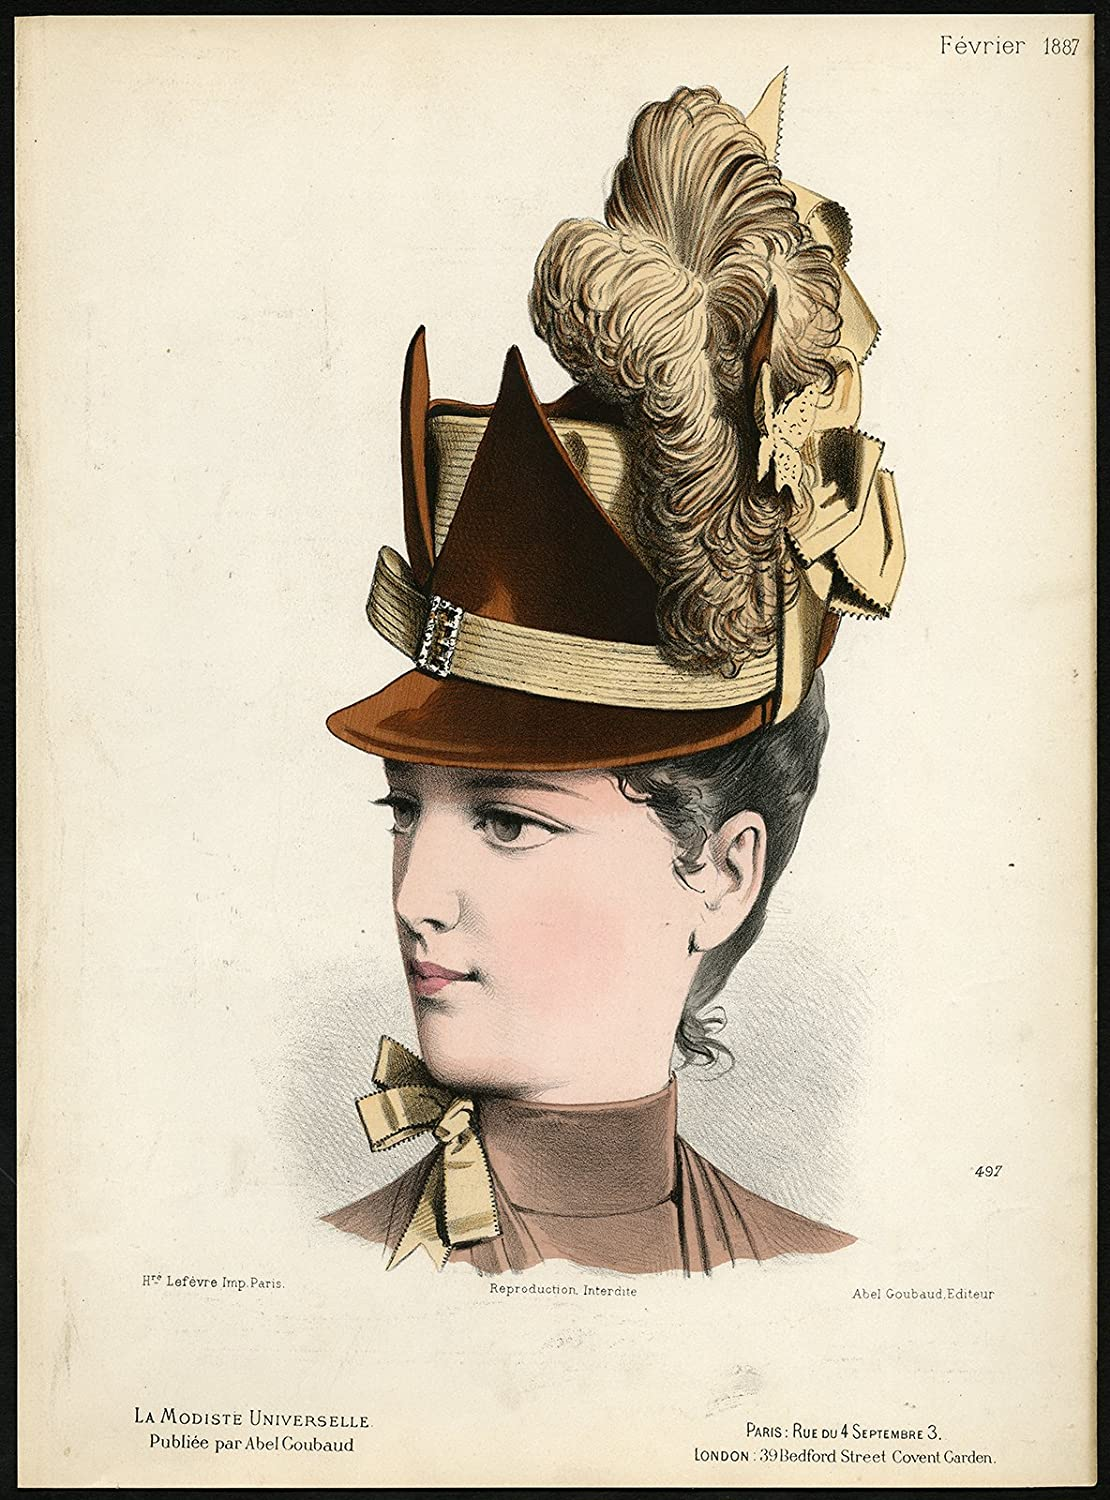 Amazon.com  Antique Fashion Print-497-MILLINERY-19TH CENTURY-HAT-HEAD  DRESS-Gonin-1887  Posters   Prints 41fe2b414cd